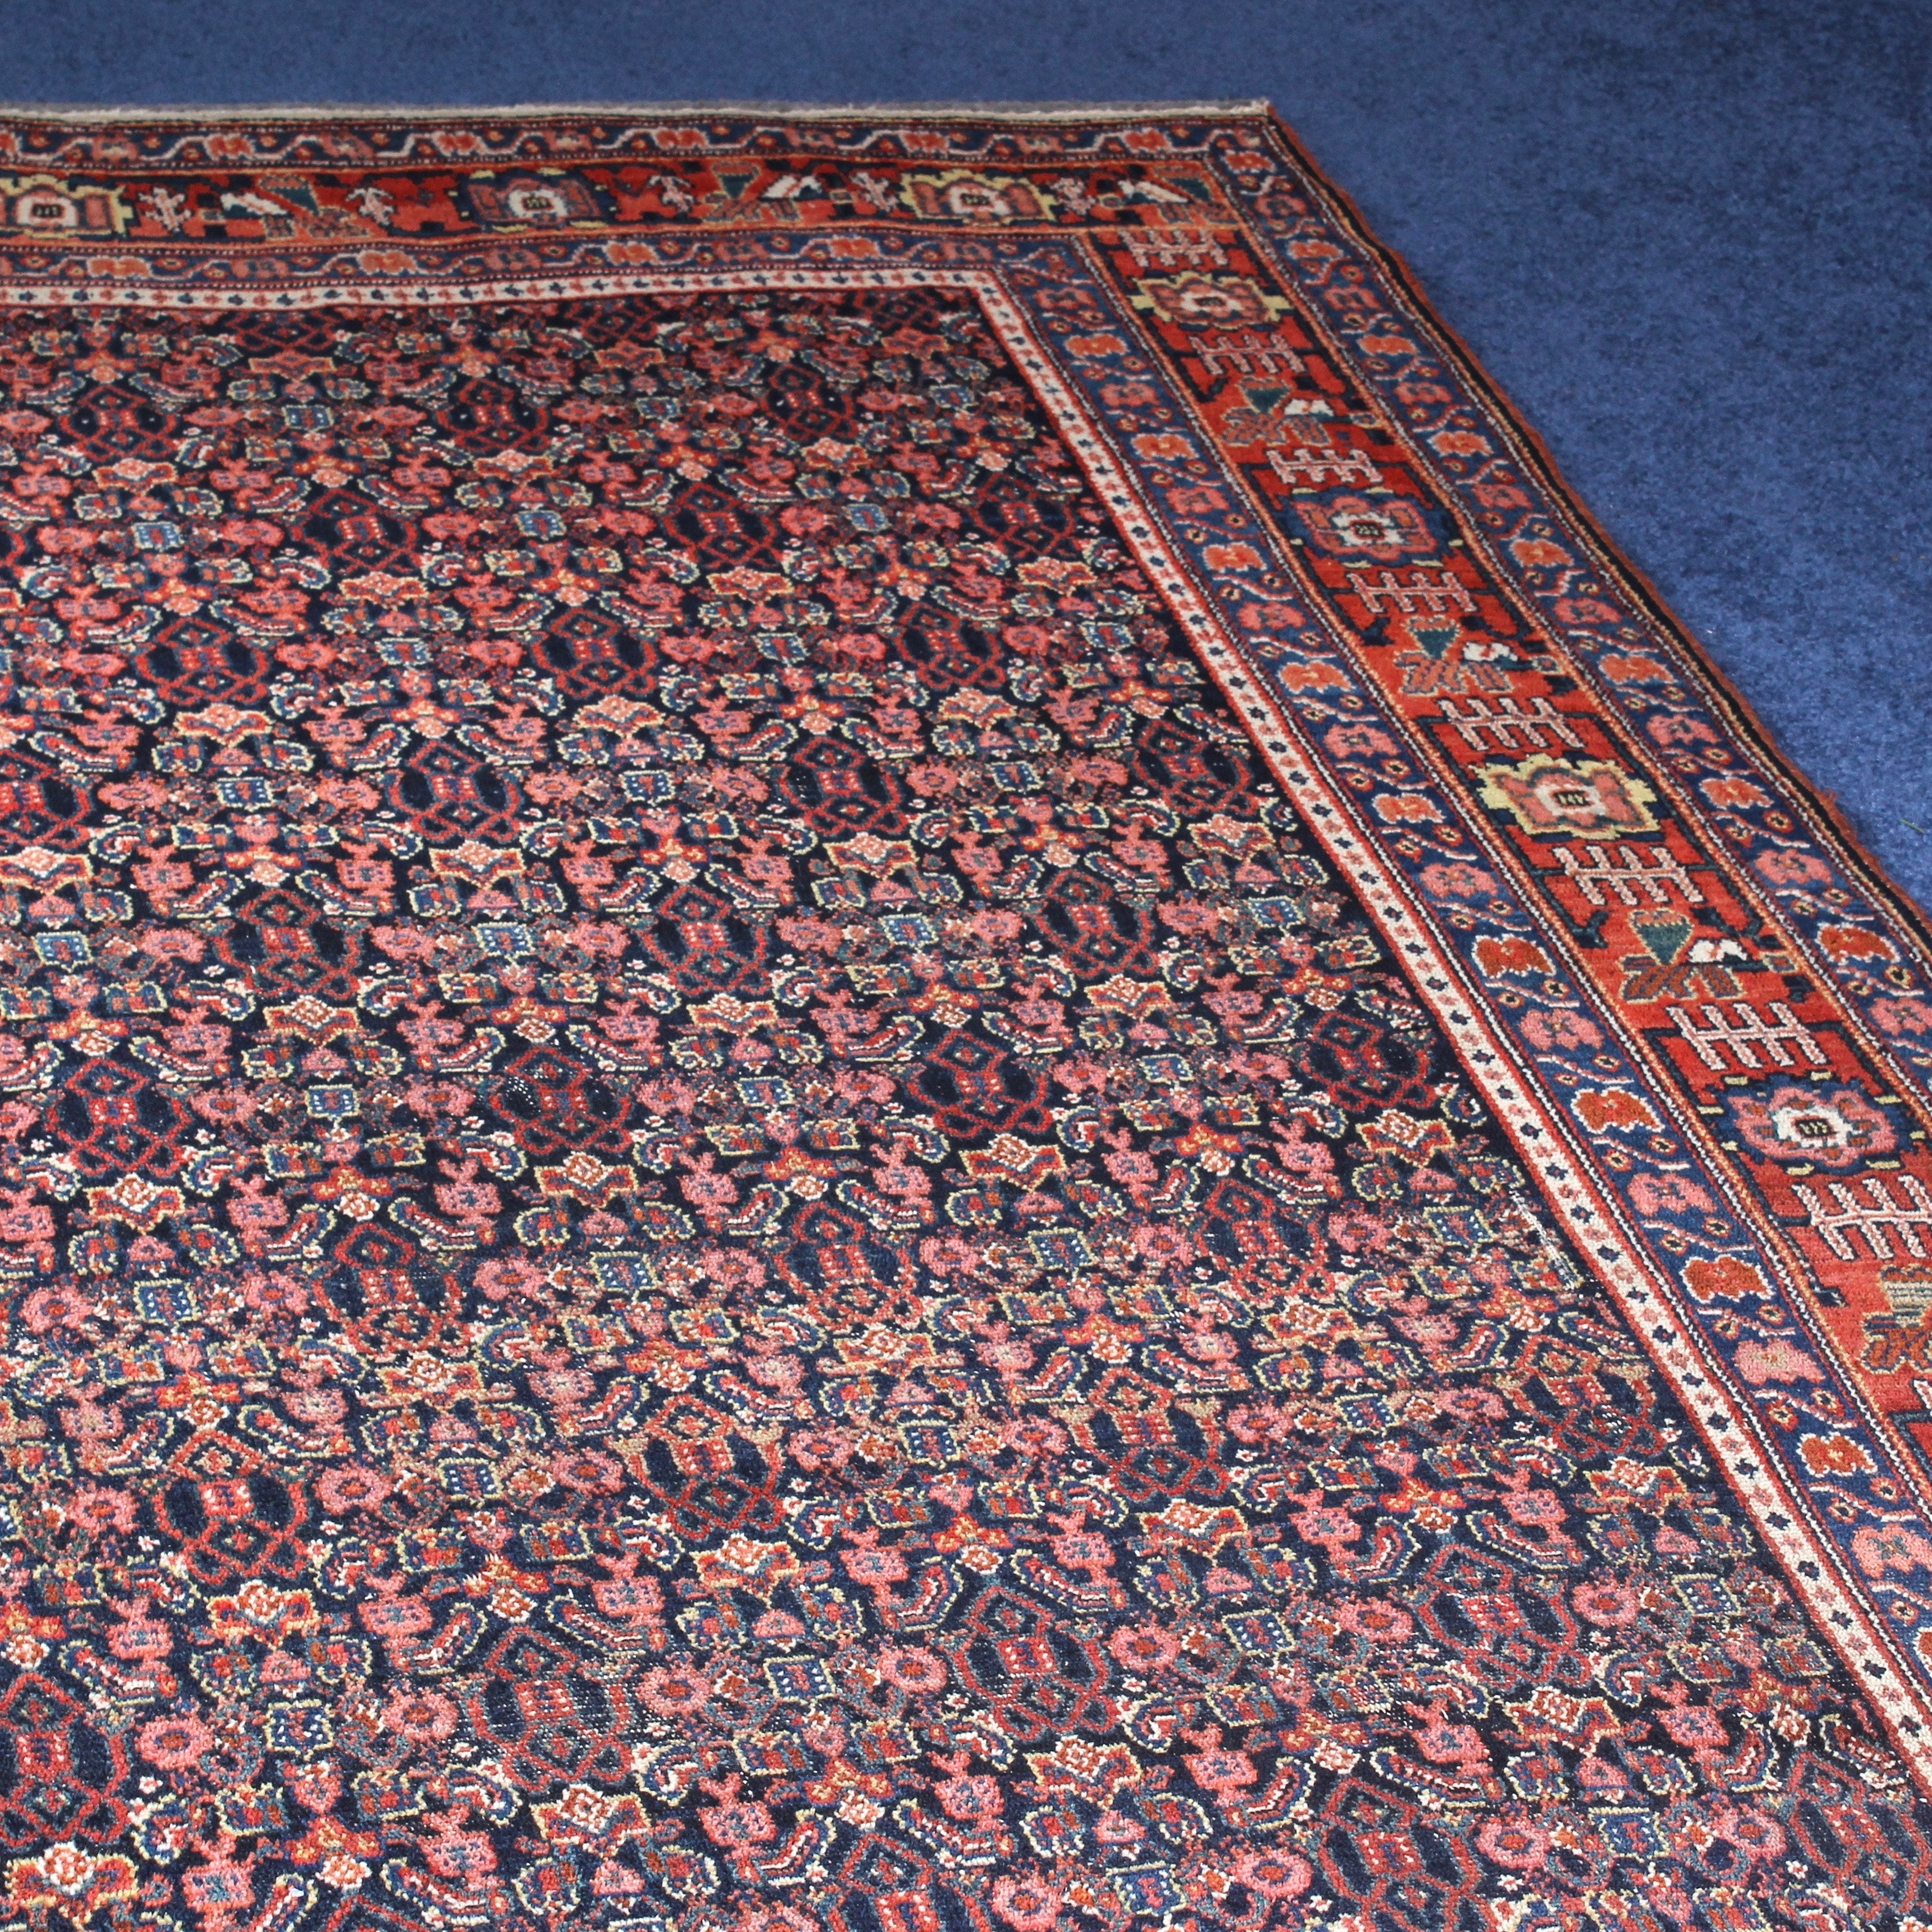 Semi-Antique Room Sized Hand-Knotted Bijar Wool Area Rug